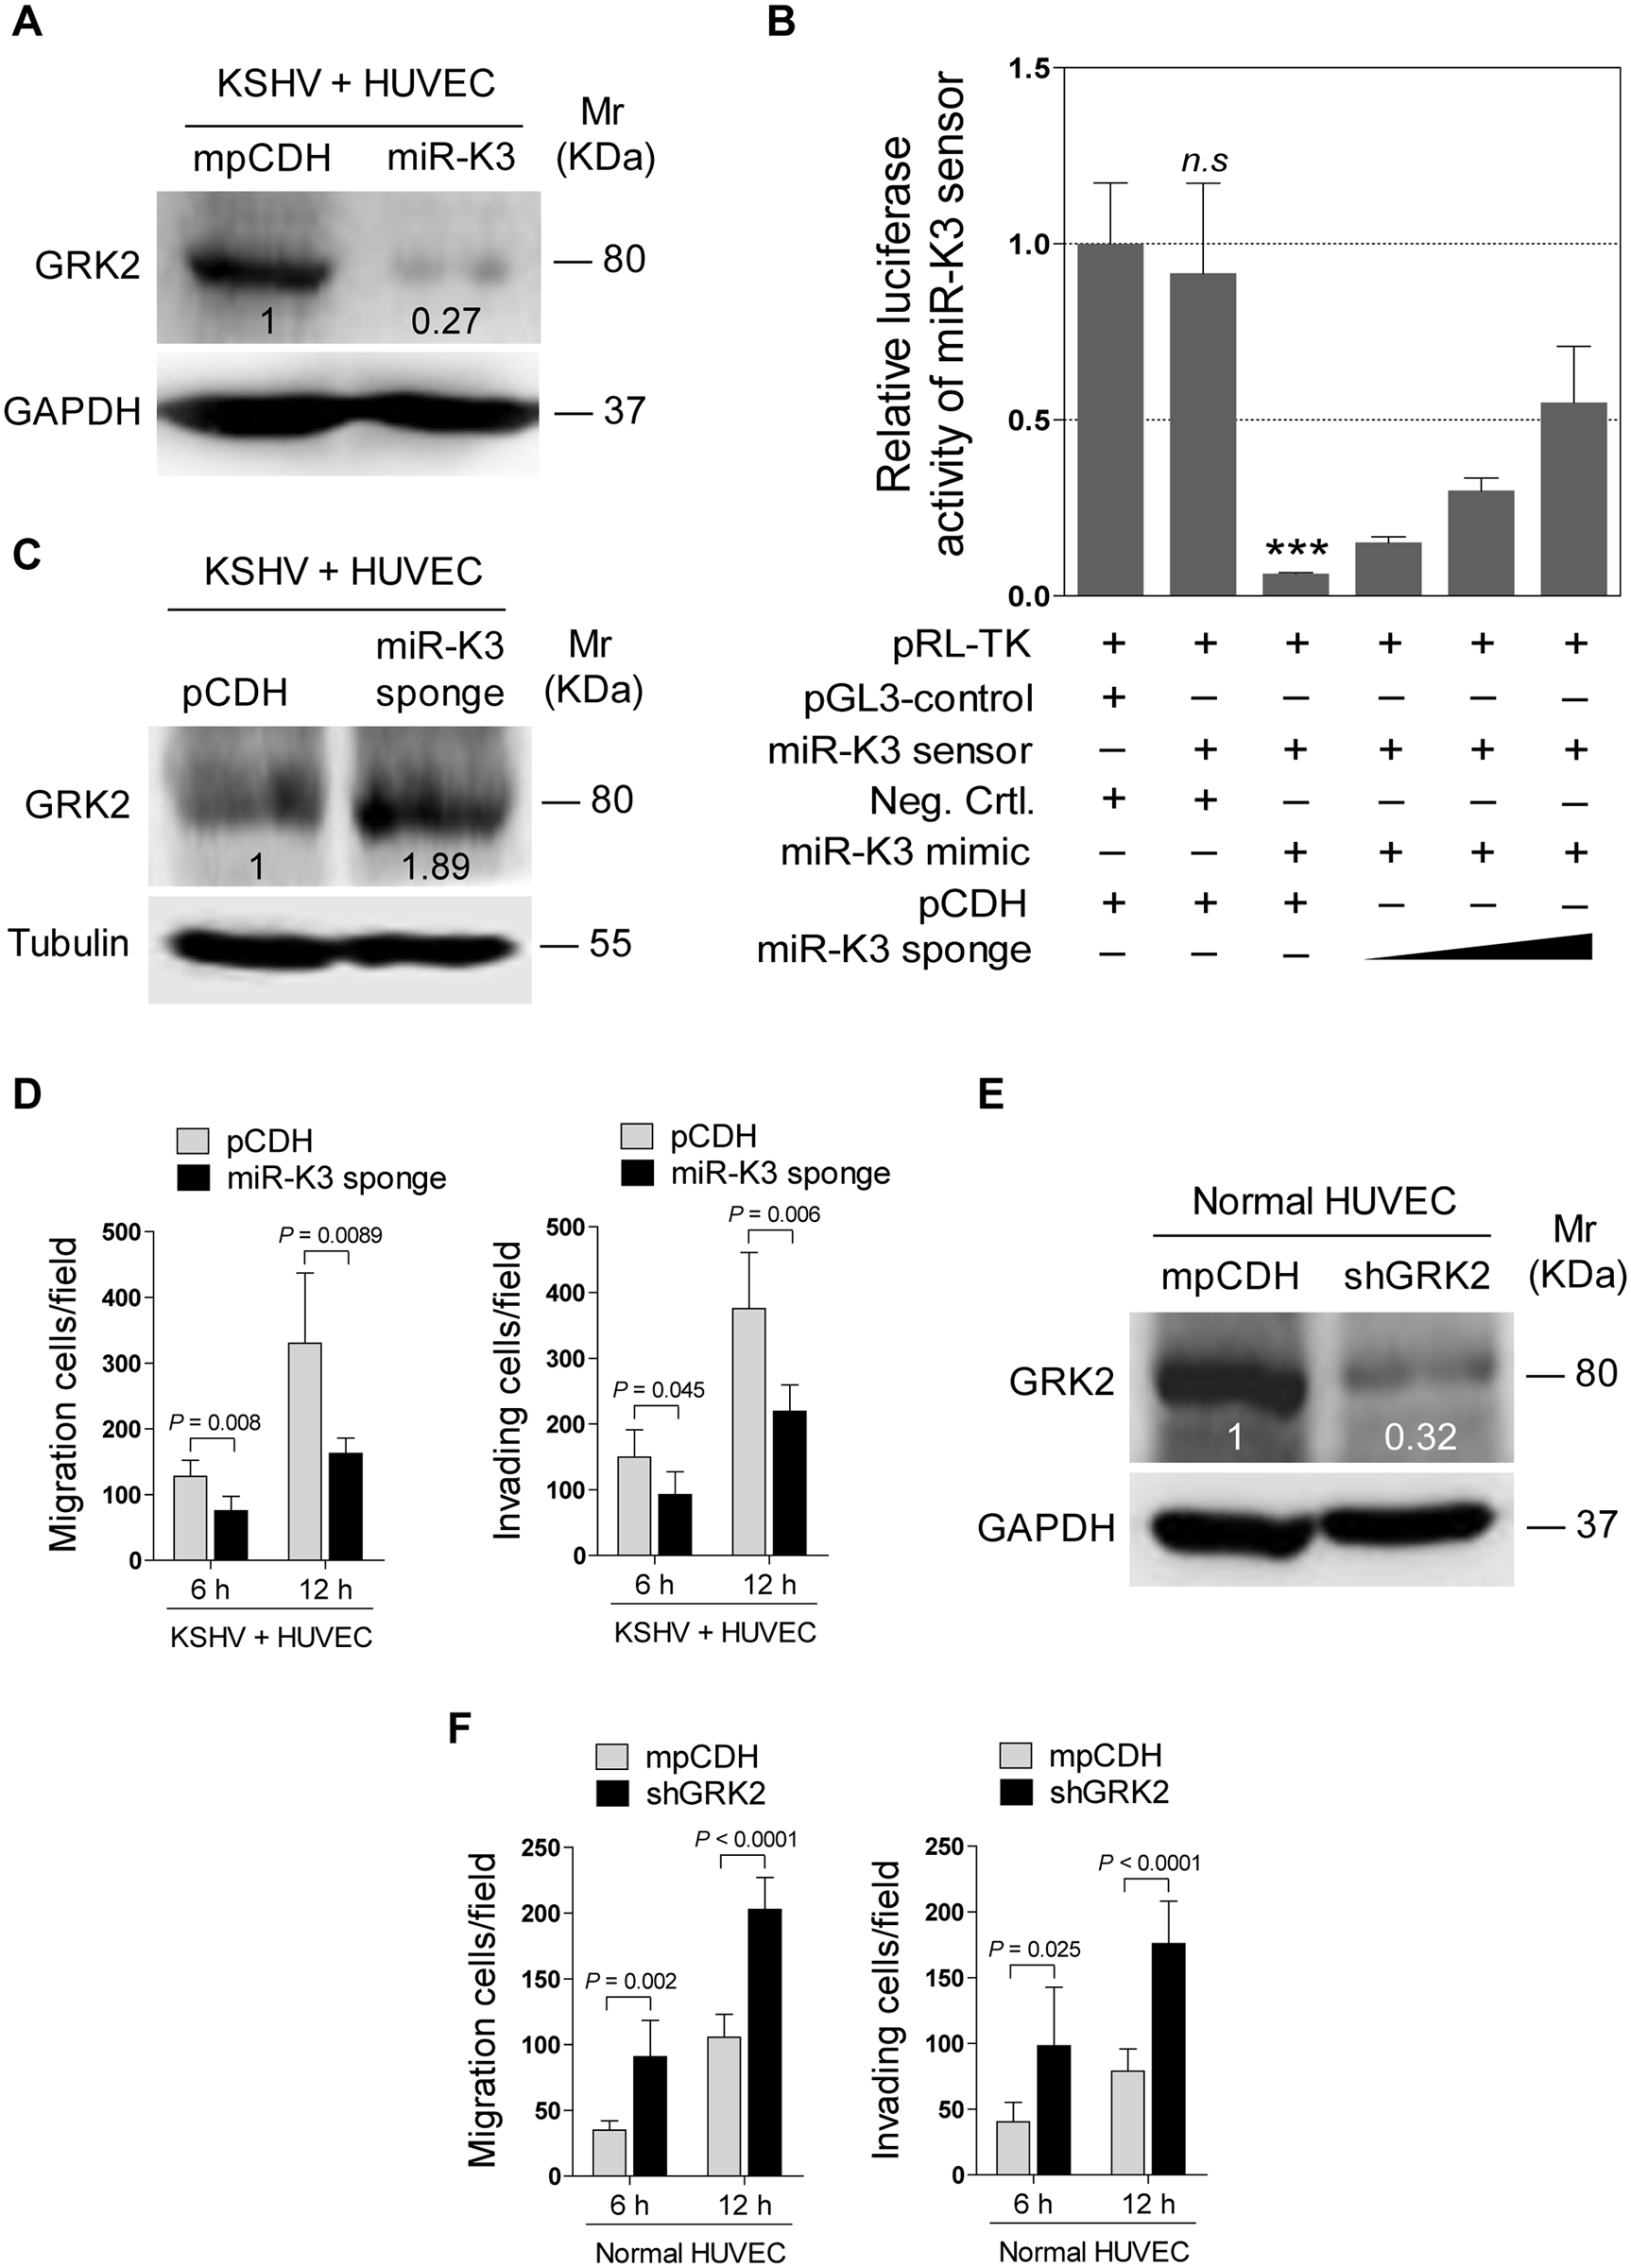 KSHV infection promotes endothelial cell migration and invasion through miR-K3 by targeting GRK2.